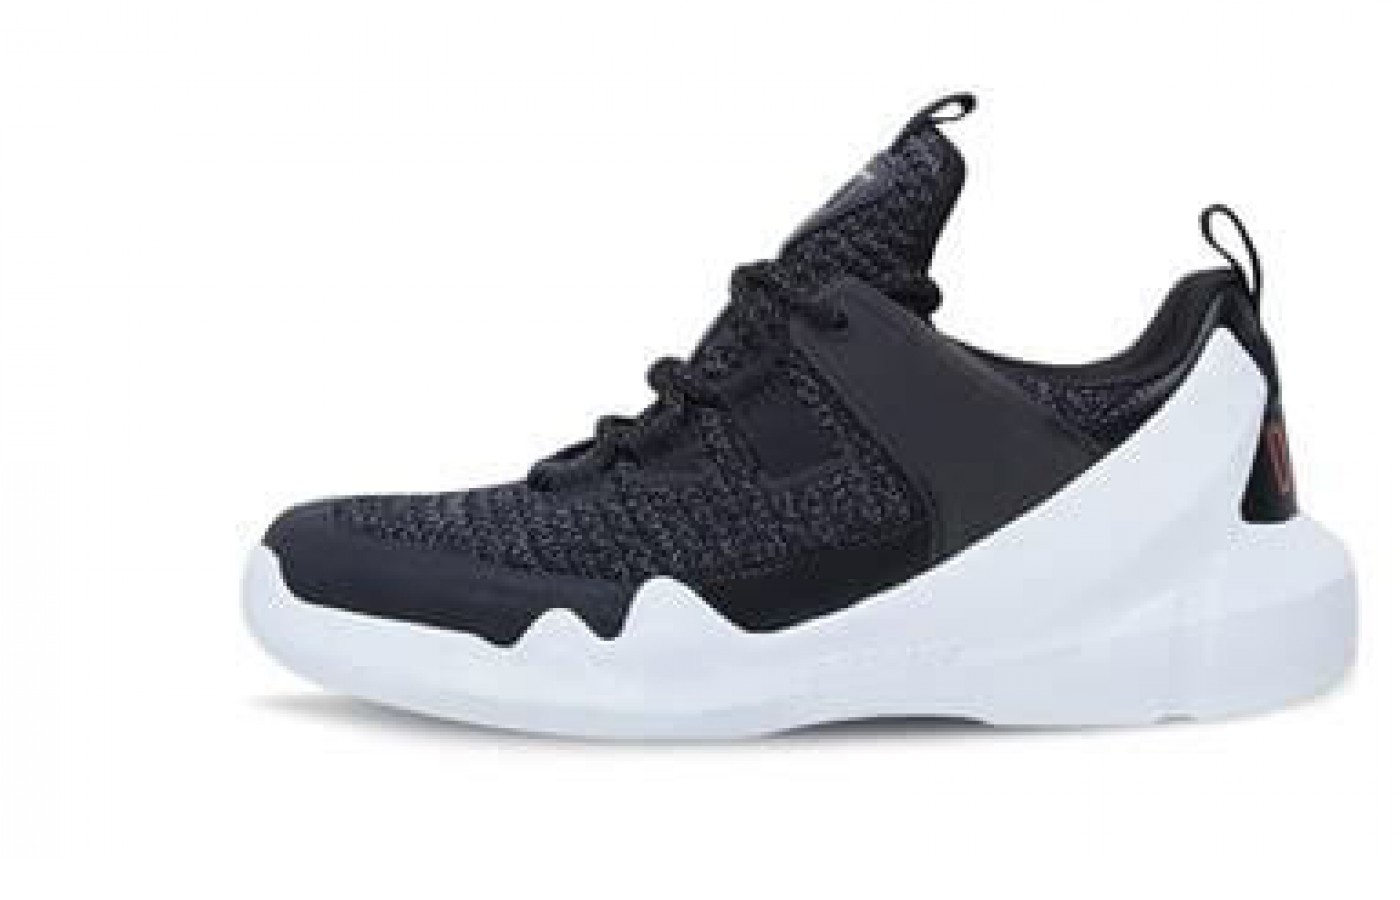 Skechers D'Lites DLT-A Left to Right